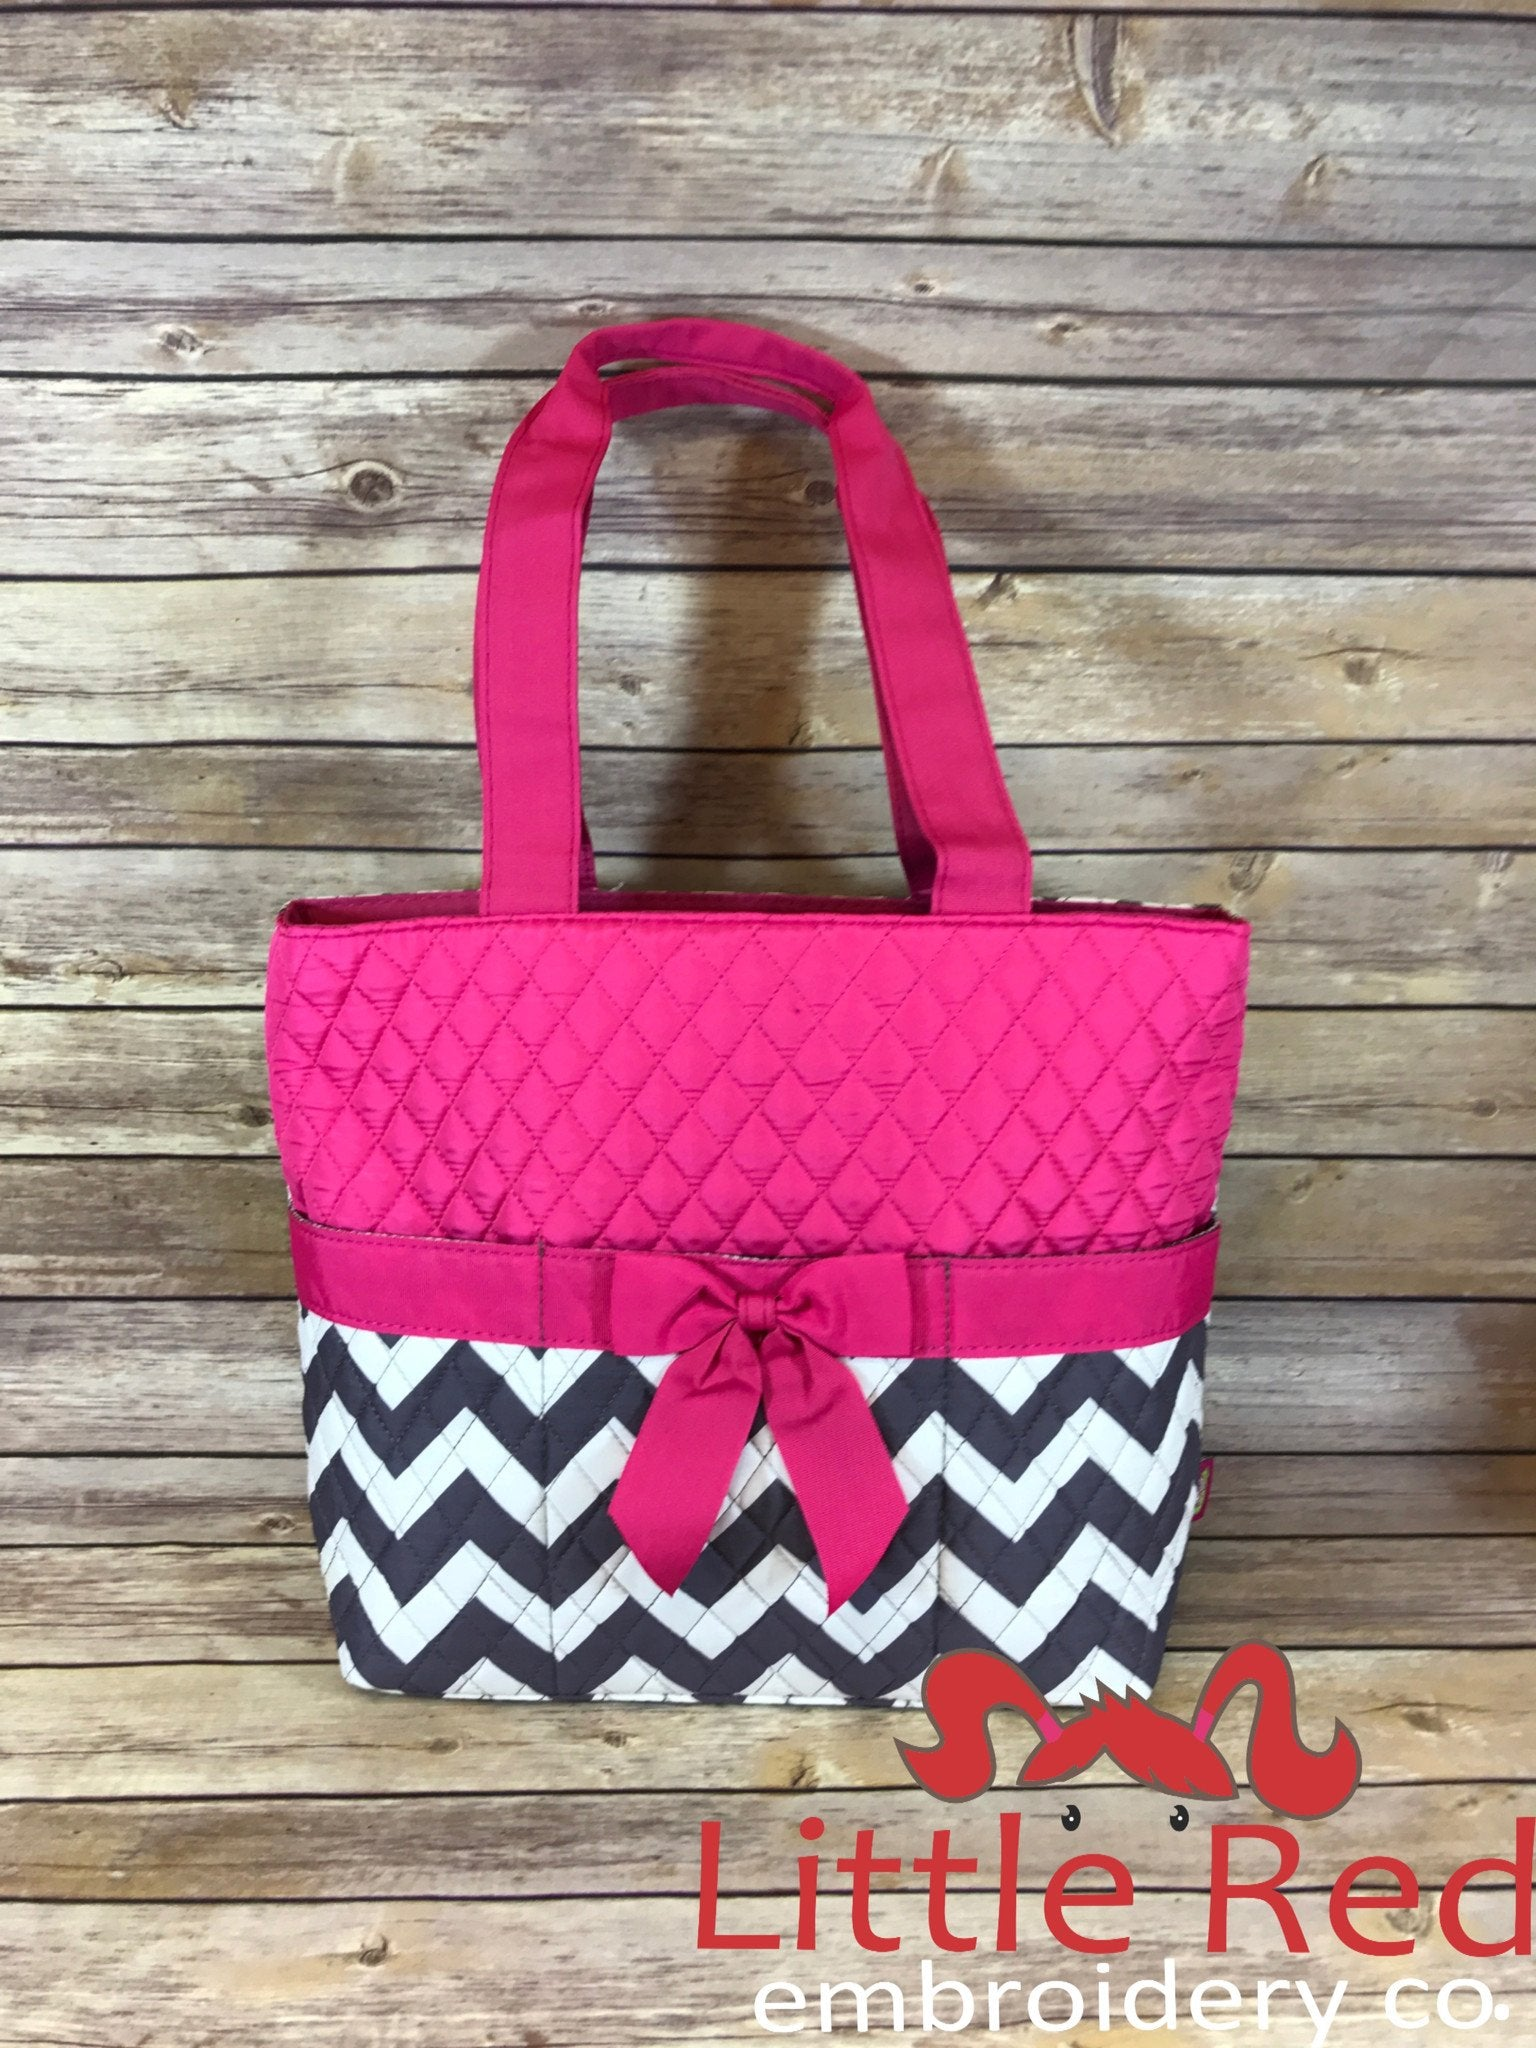 Hot Pink/Grey & White Chevron Print Quilted Diaper Bag